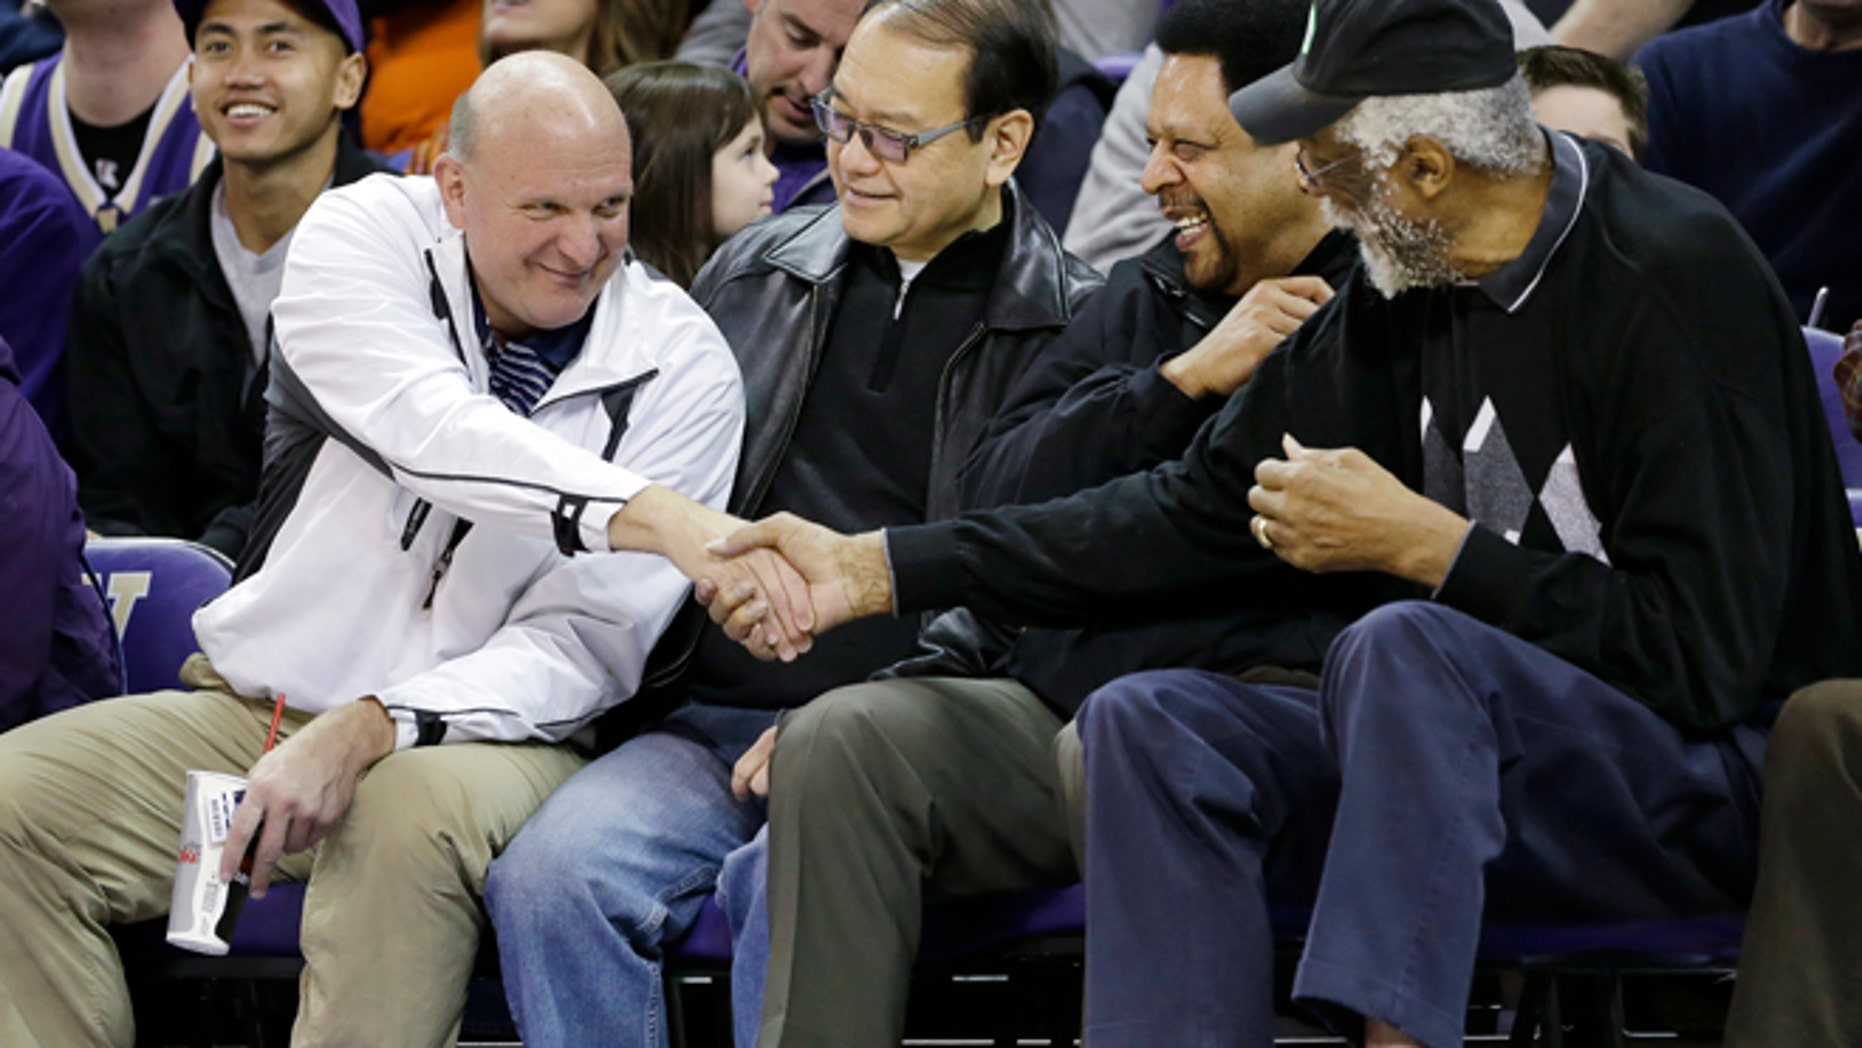 """Jan. 25, 2014: In this file photo, then-Microsoft CEO Steve Ballmer, left, shakes hands with former NBA players Bill Russell, right, and """"Downtown"""" Freddie Brown as Omar Lee looks on during an NCAA college basketball game between Washington and Oregon State in Seattle."""